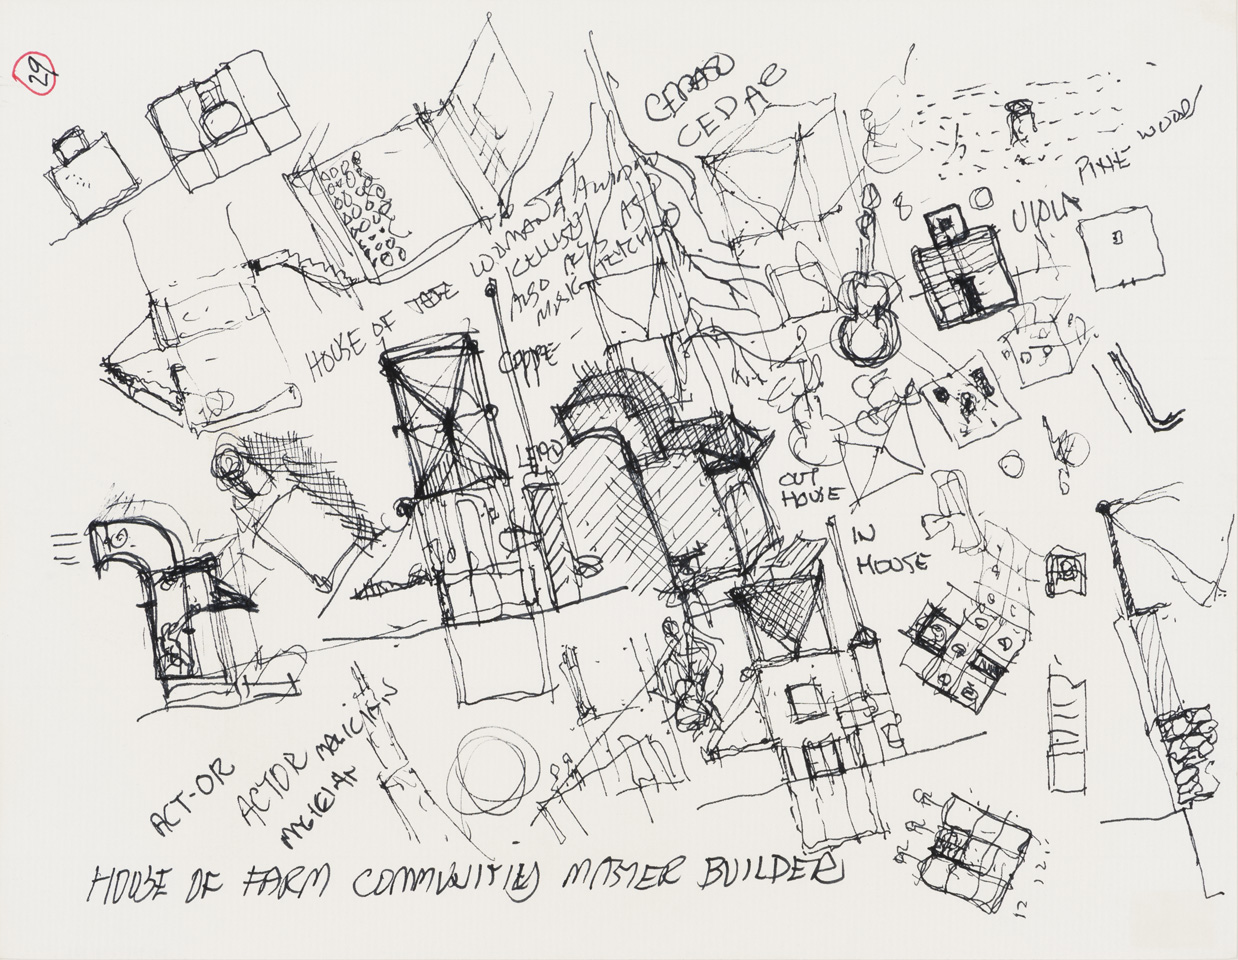 John Hejduk, House for farm community master builder (Lancaster-Hanover Mask)